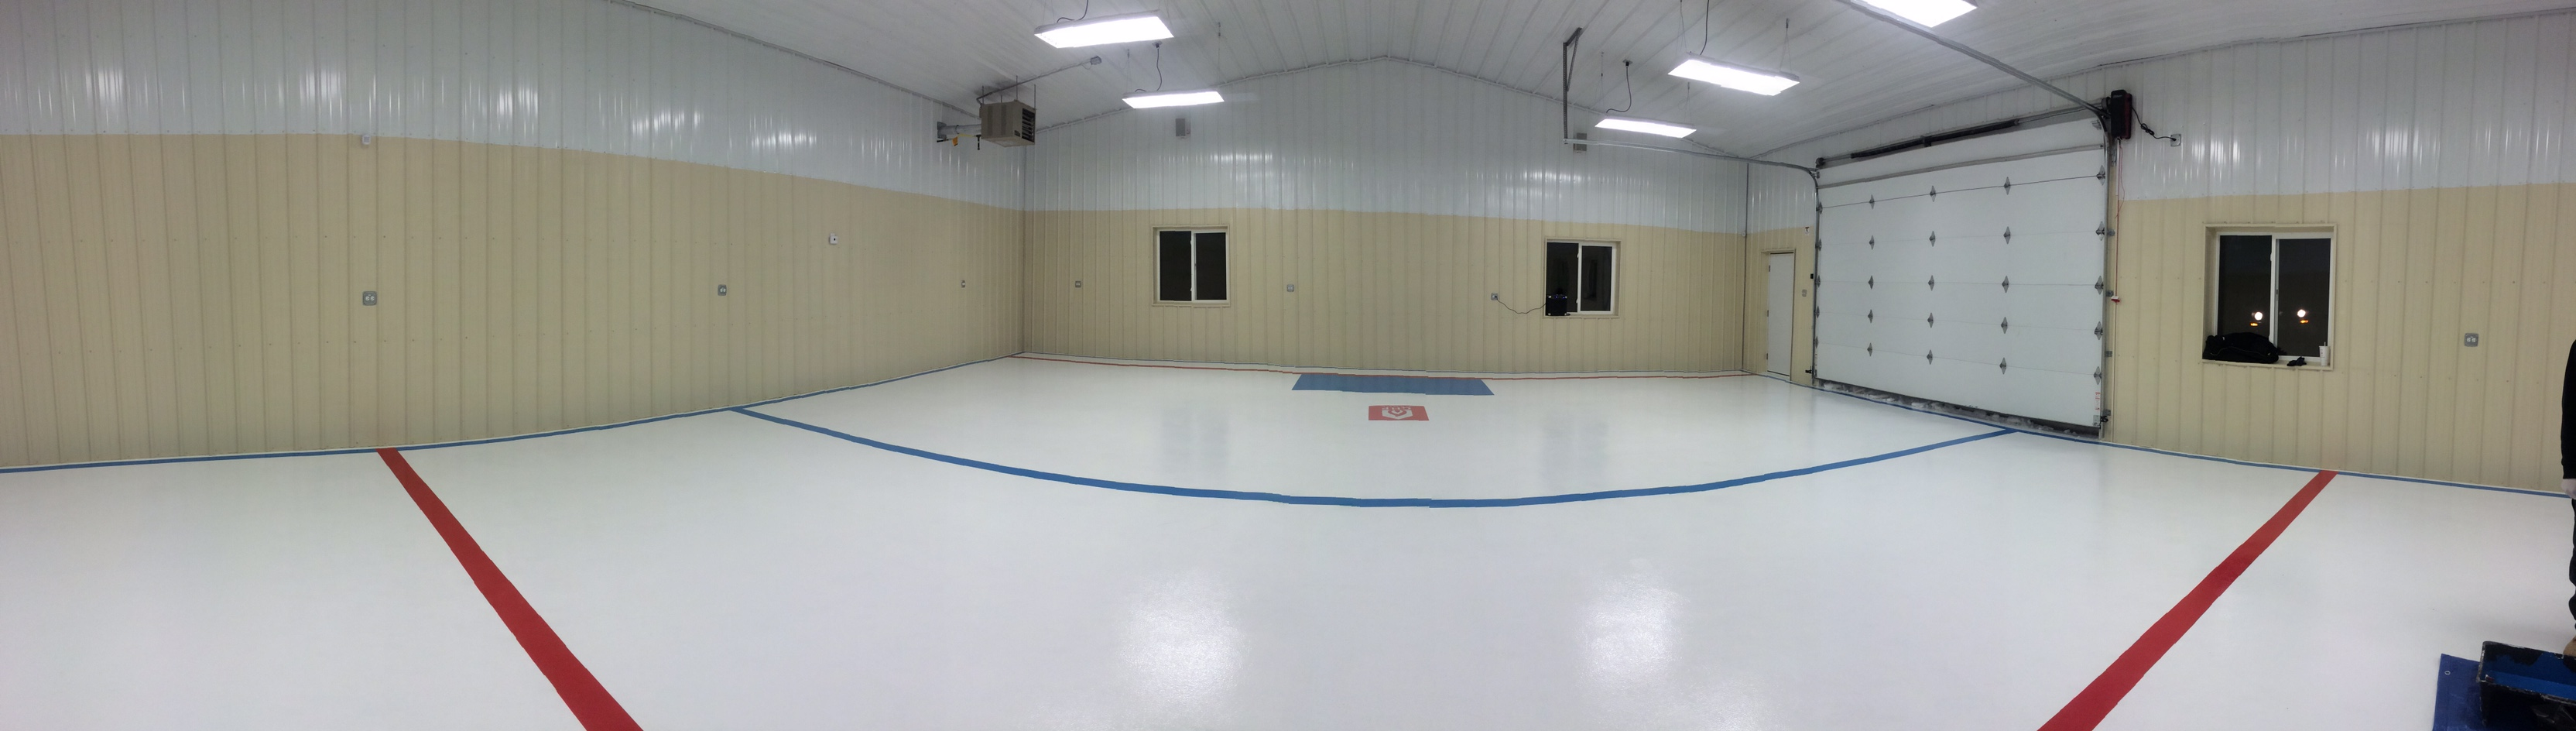 Images of Epoxy Floor Coating Reviews - Watch Out, There's ...